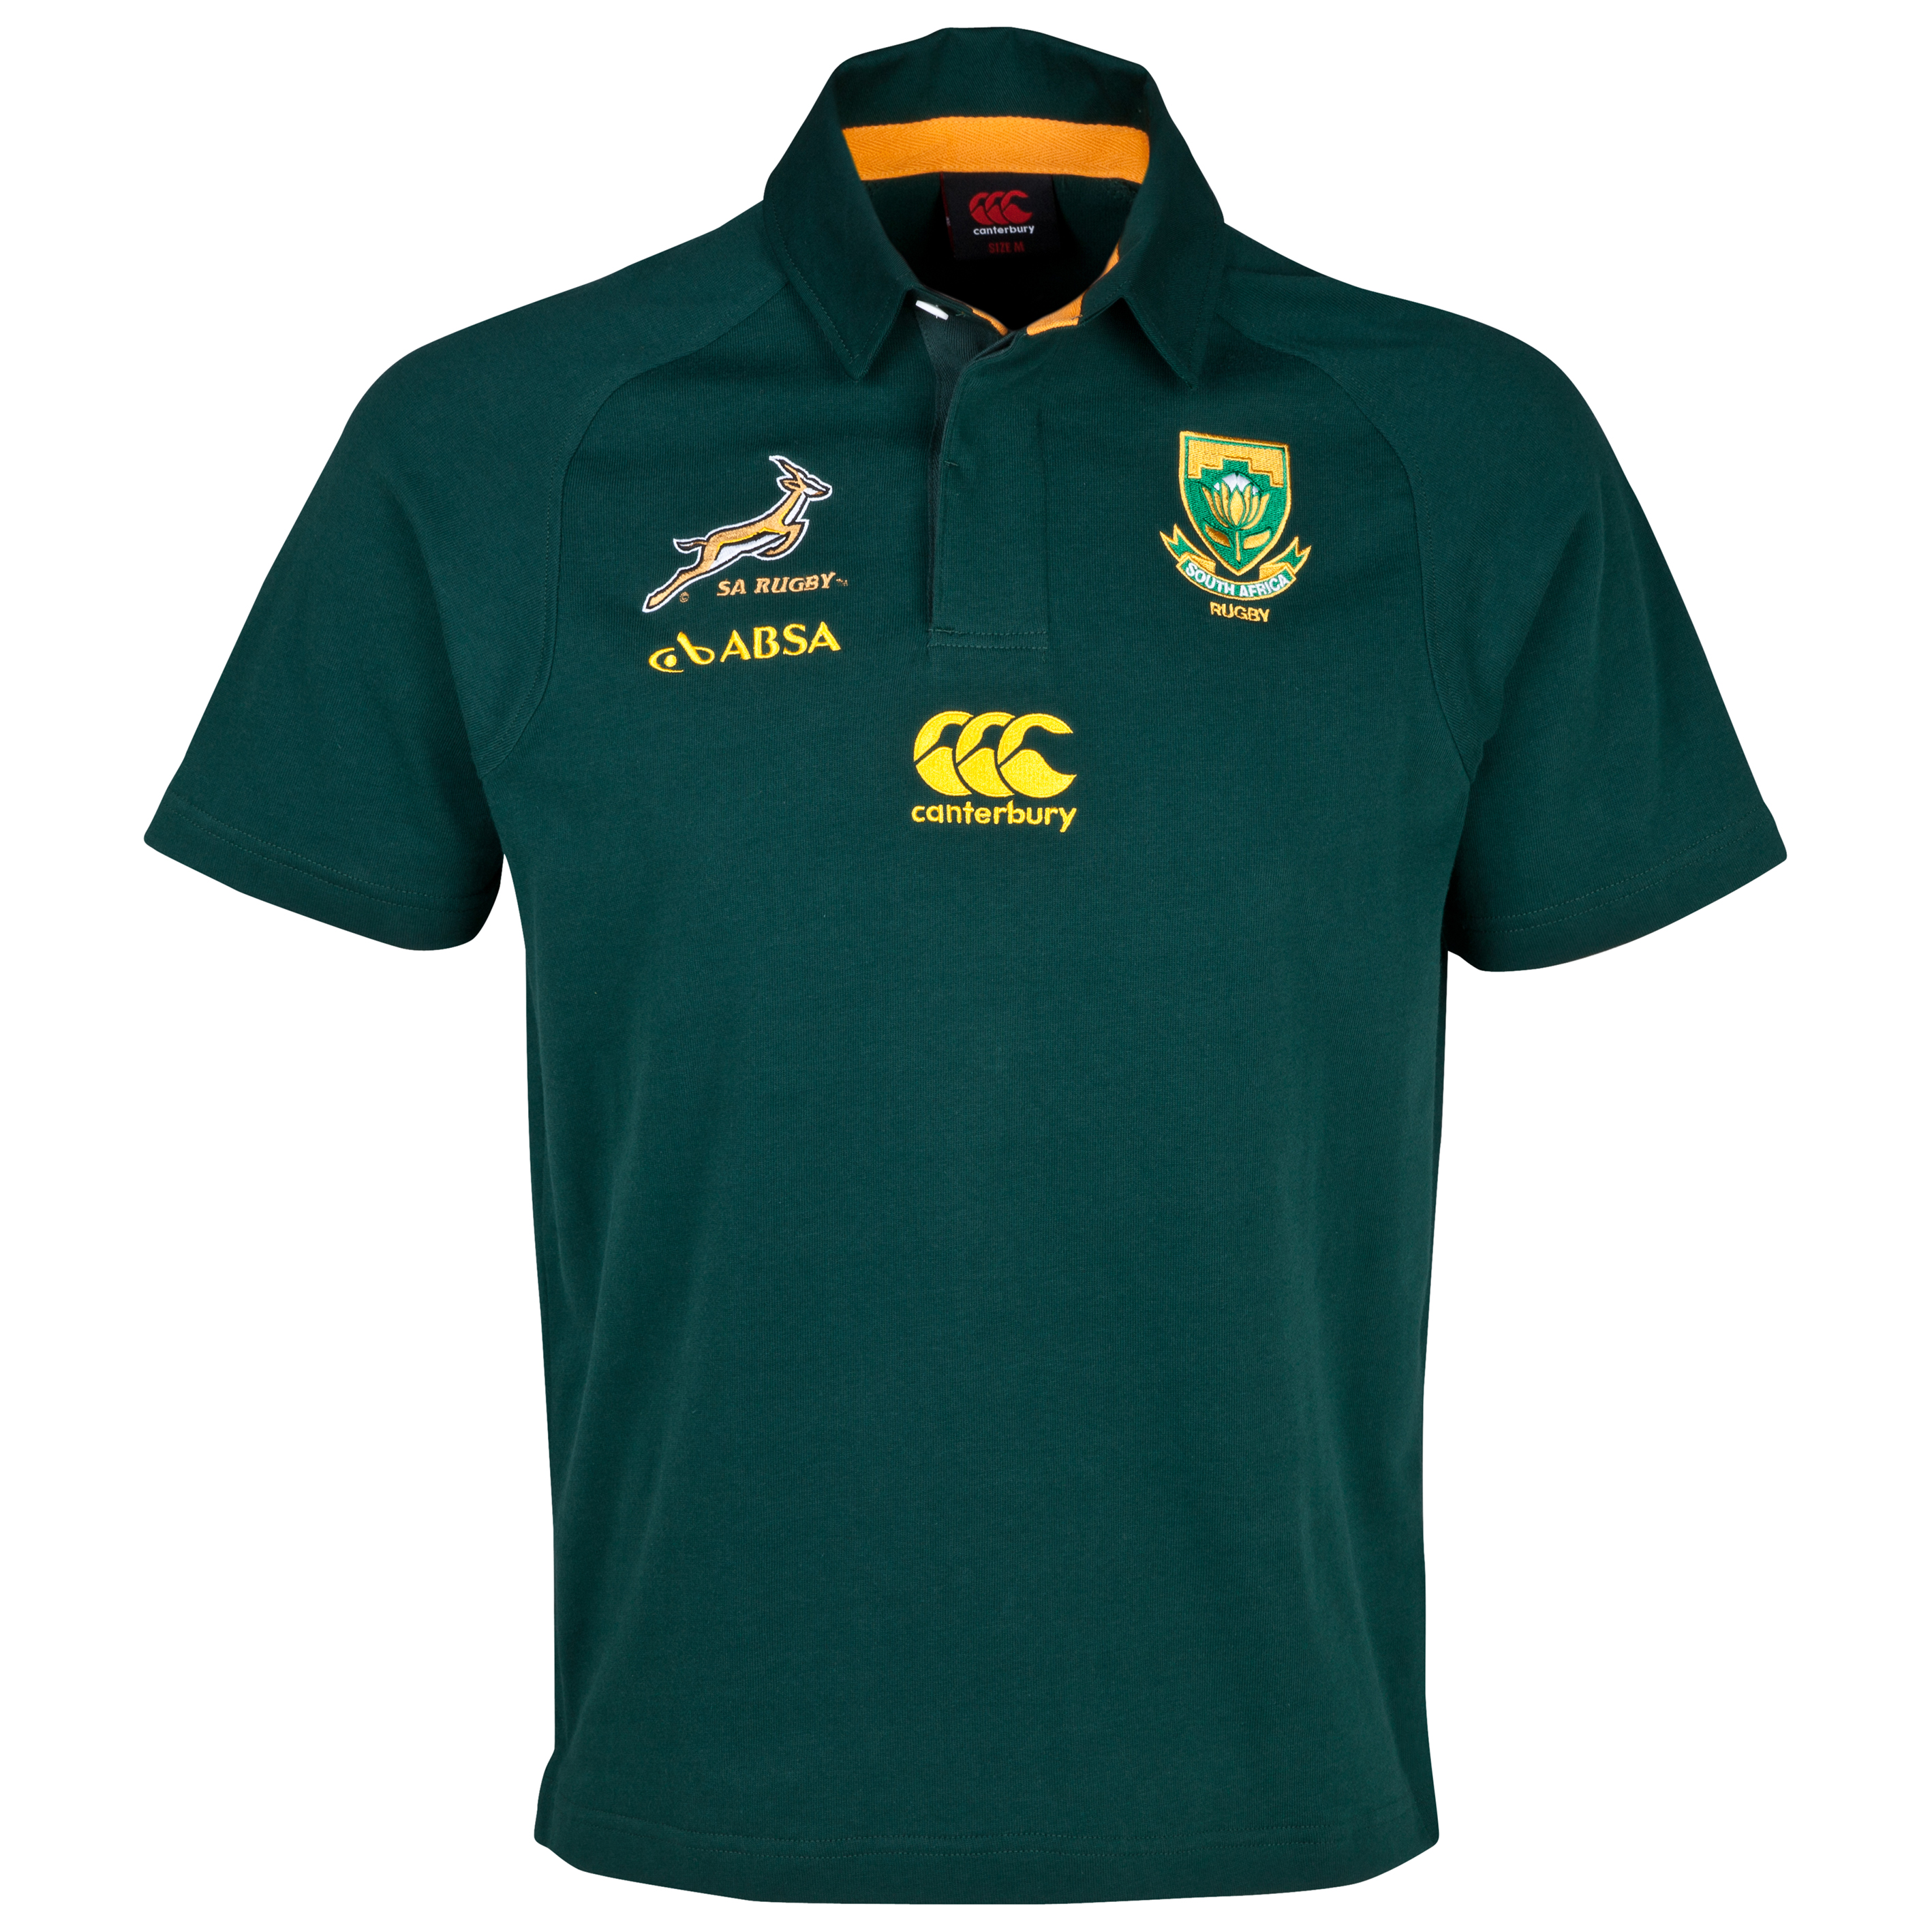 Springboks Home Rugby Classic Shirt 2013/14